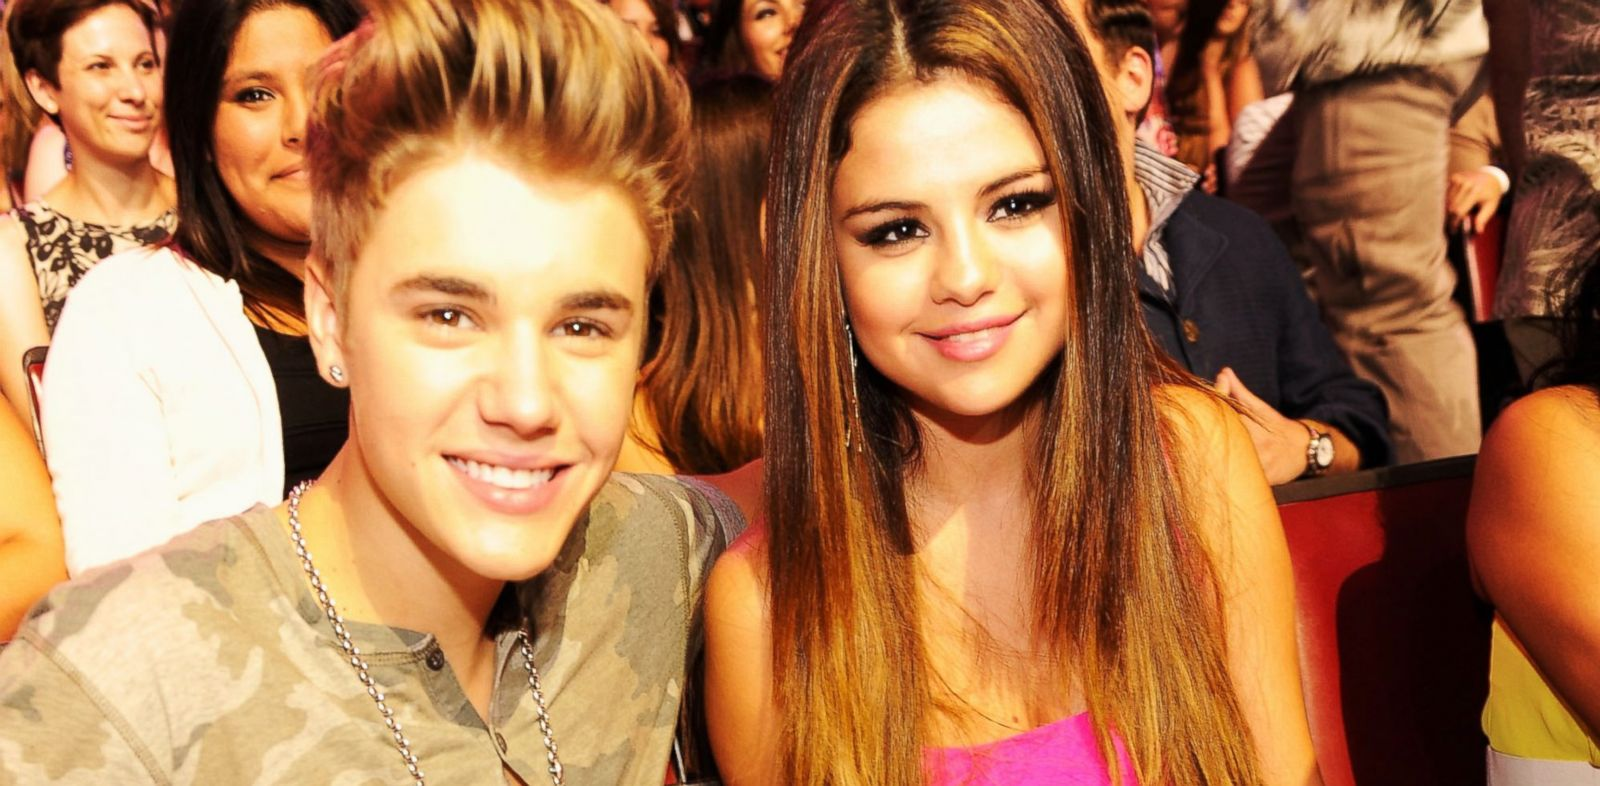 PHOTO: Justin Bieber and Selena Gomez attend the 2012 Teen Choice Awards, July 22, 2012, in Universal City, Calif.